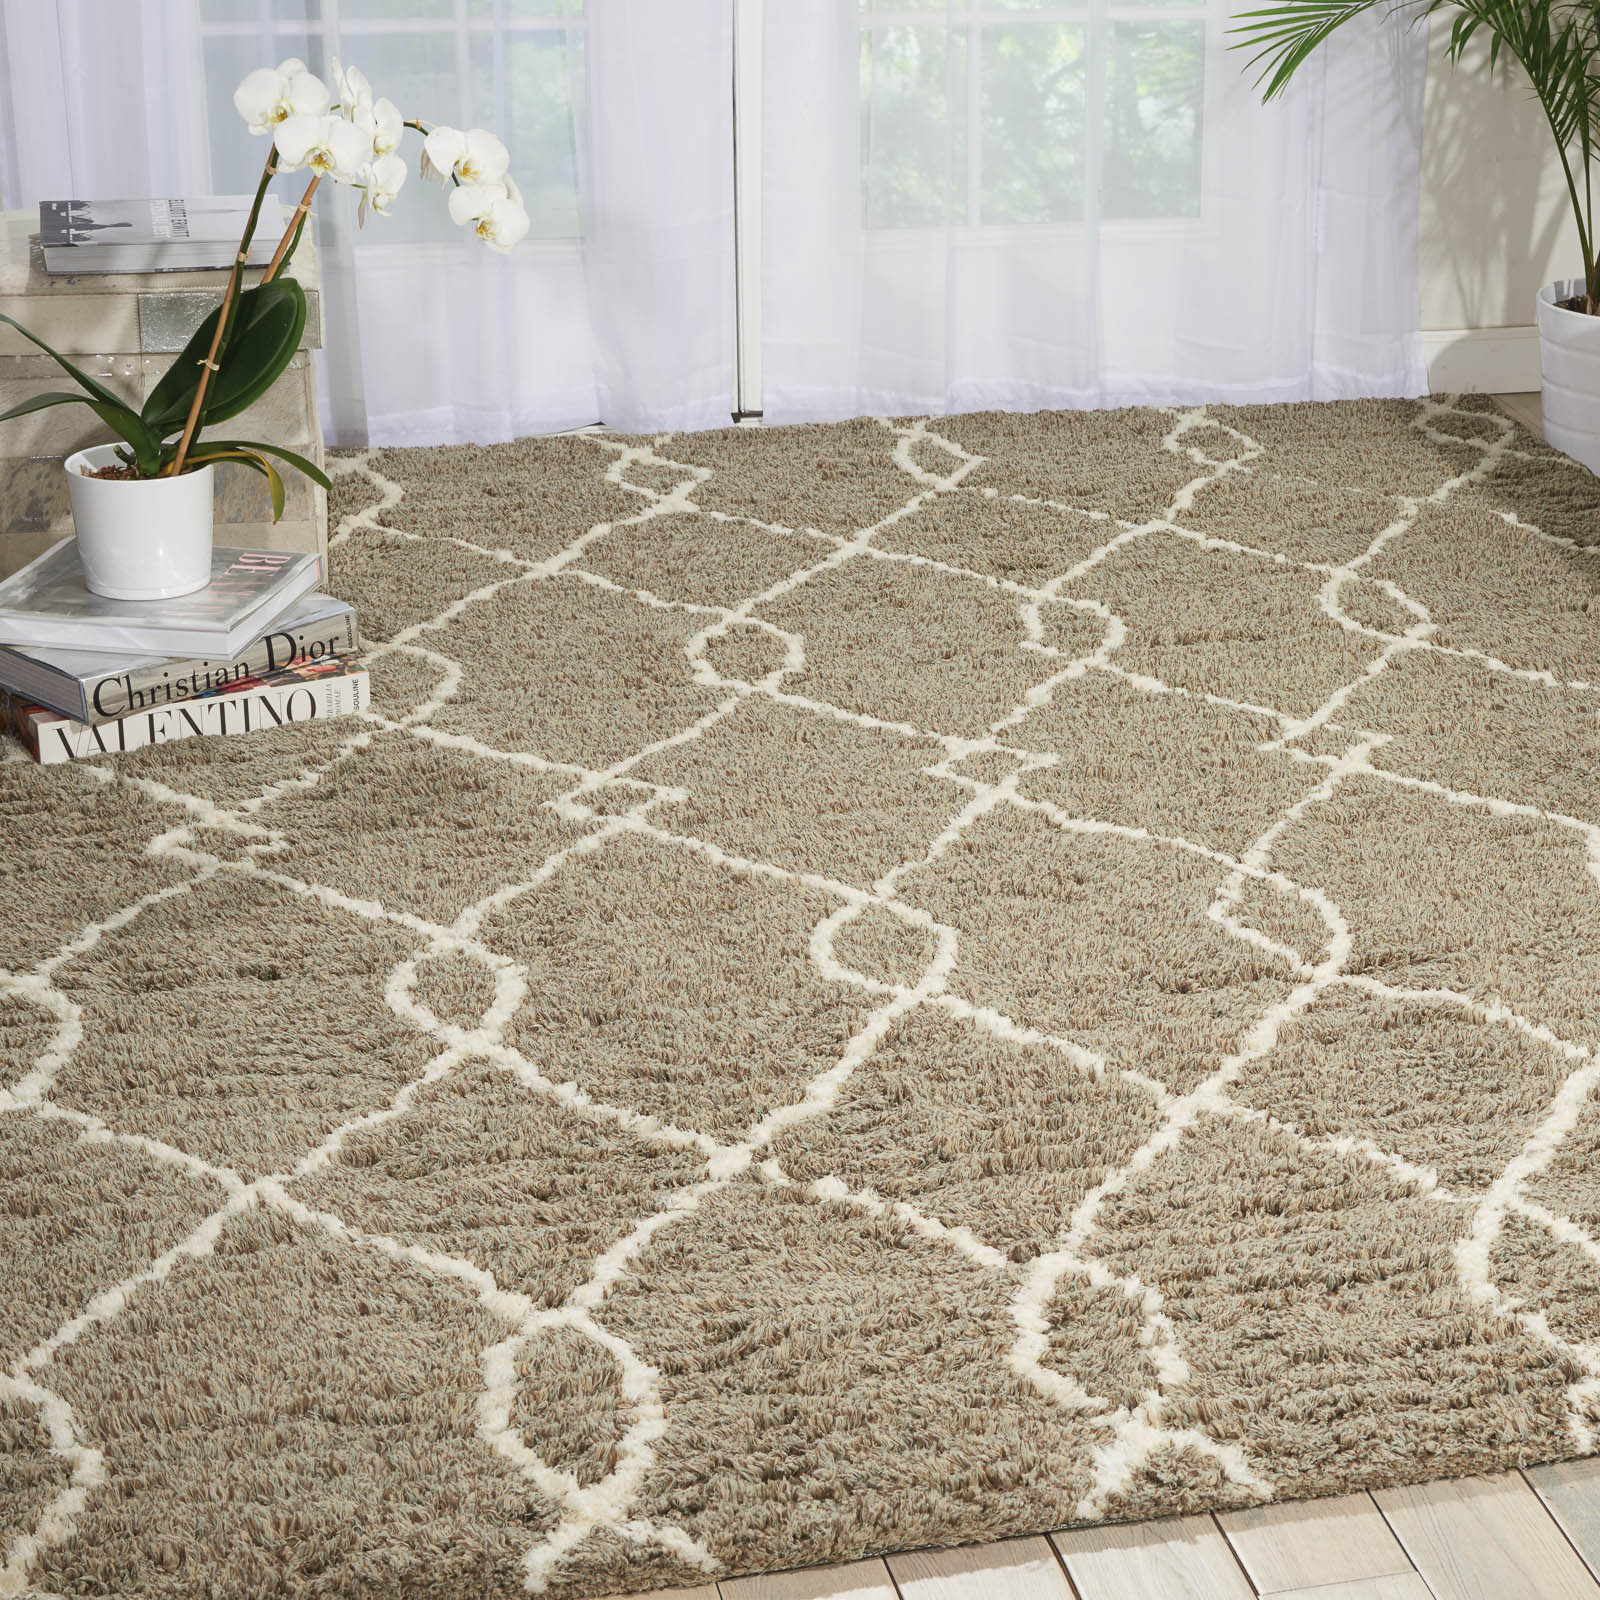 Nourison Galway Rugs GLW02 in Mocha and Ivory